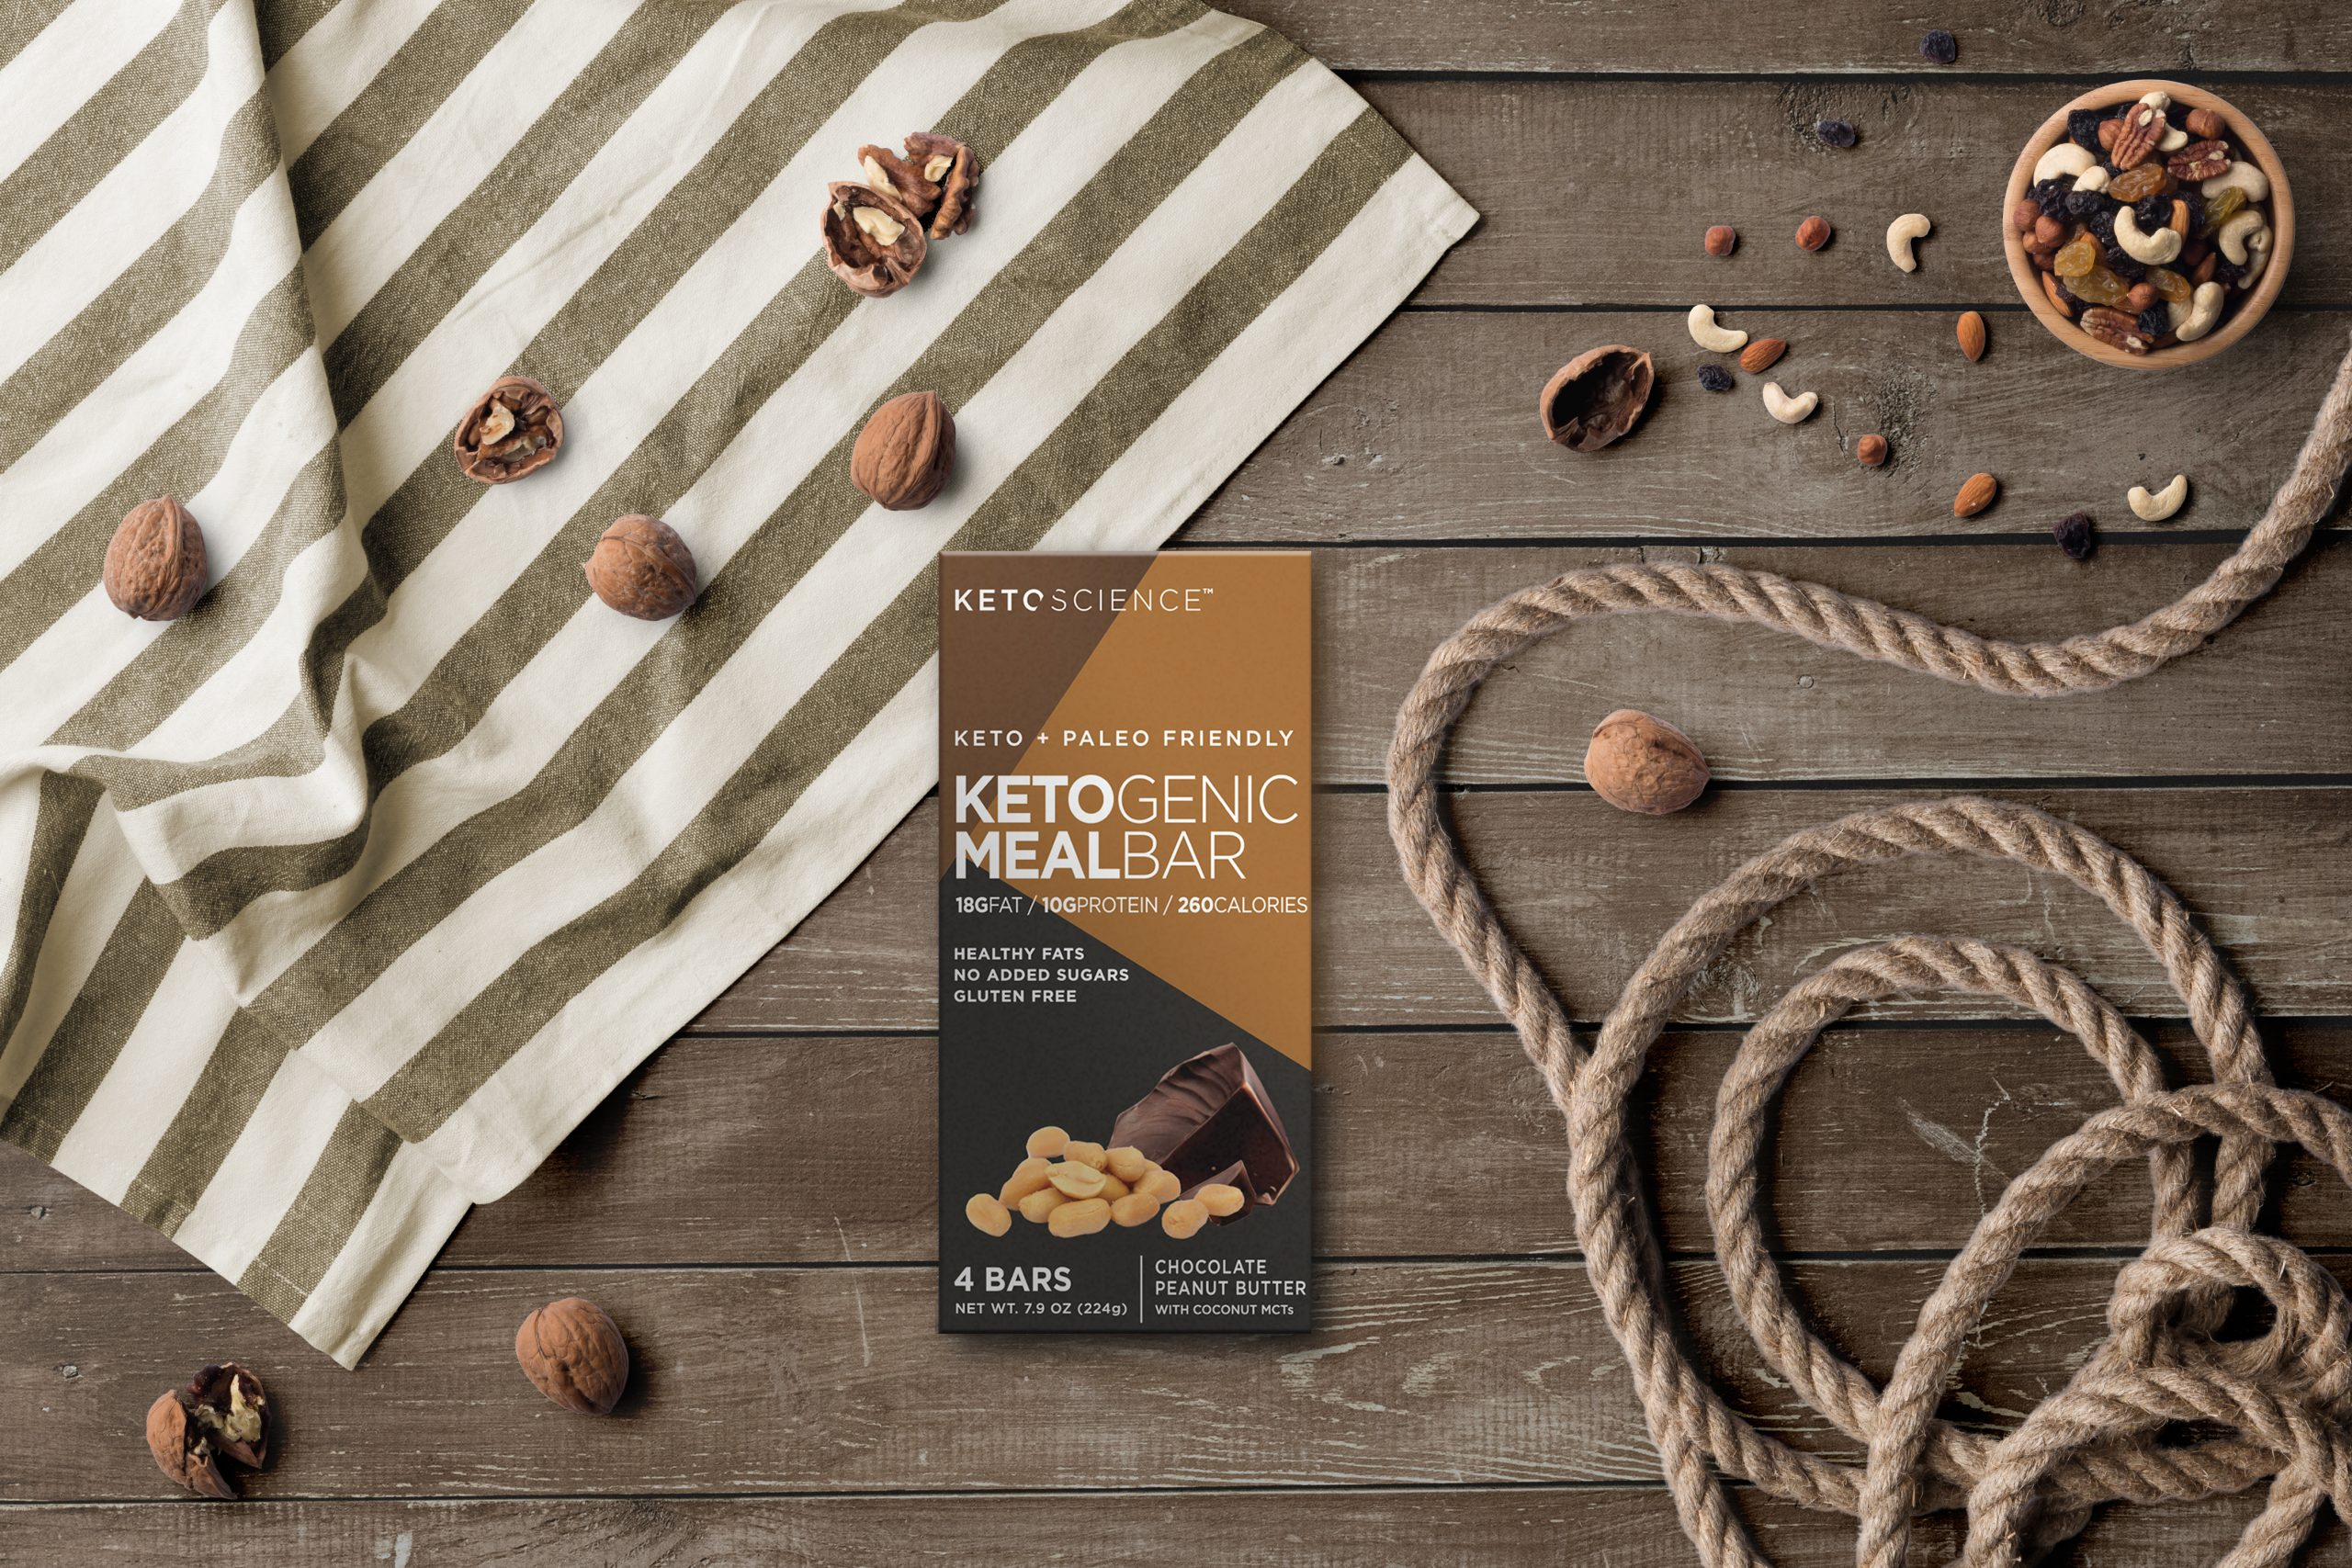 Keto Science ketogenic meal bar for the website.